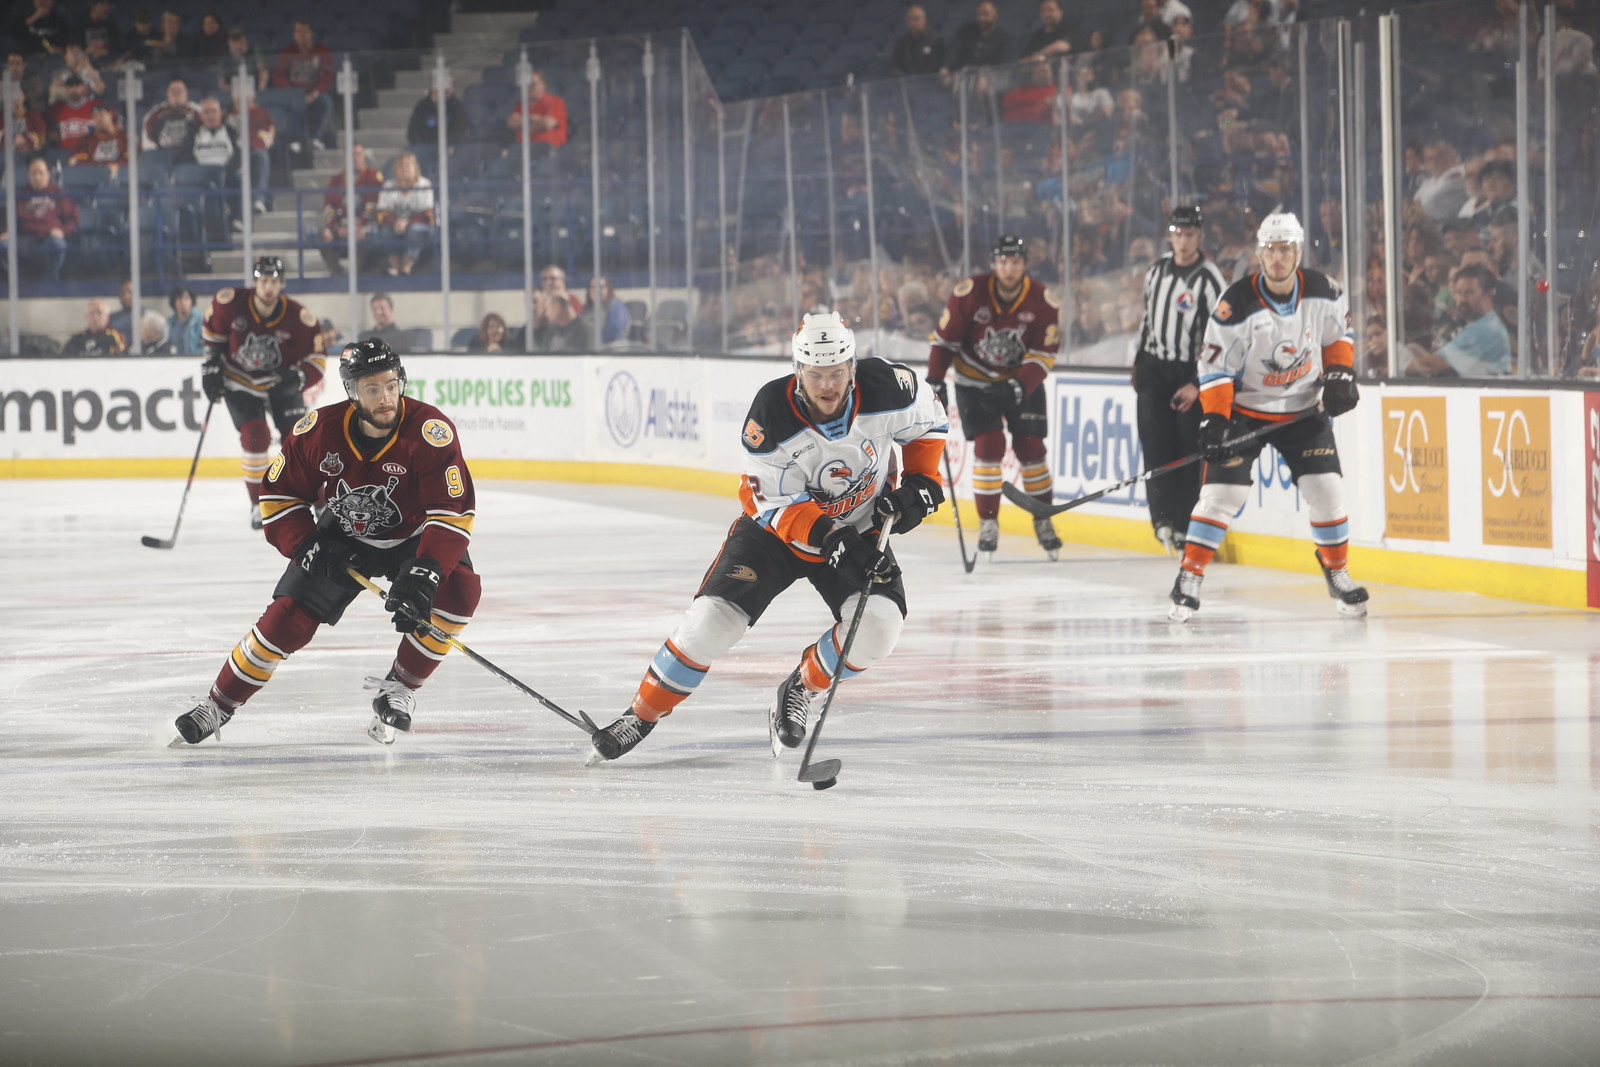 May 27, 2019 - Game 6 - Western Conference Finals vs. San Diego Gulls